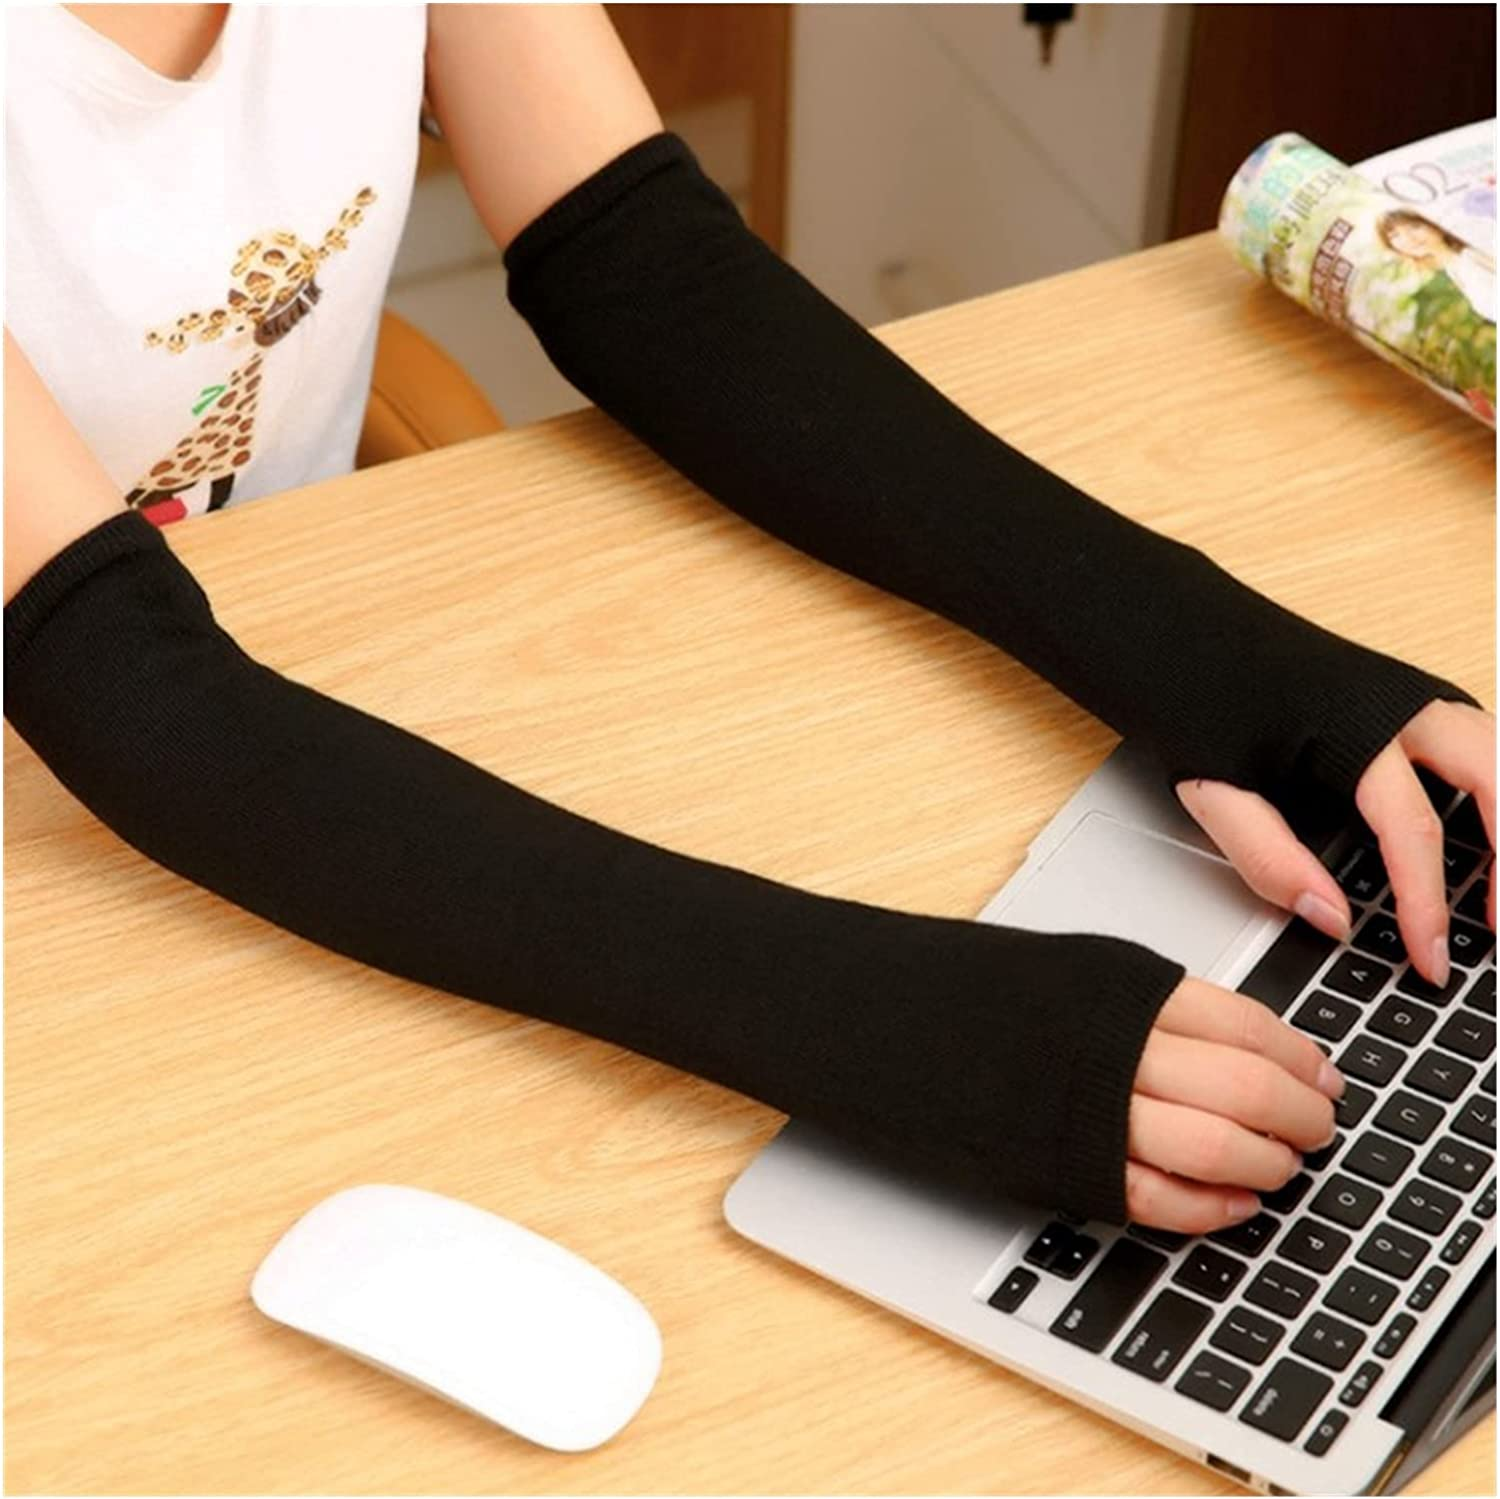 DONGMAISM Sun Protection Gloves Winter Wrist Arm Hand Arm Warmers Knitted Long Fingerless Gloves Sleeve Fingerless Gloves Soft Warm Mitten Elbow Mittens Bridal Gloves (Color : E)